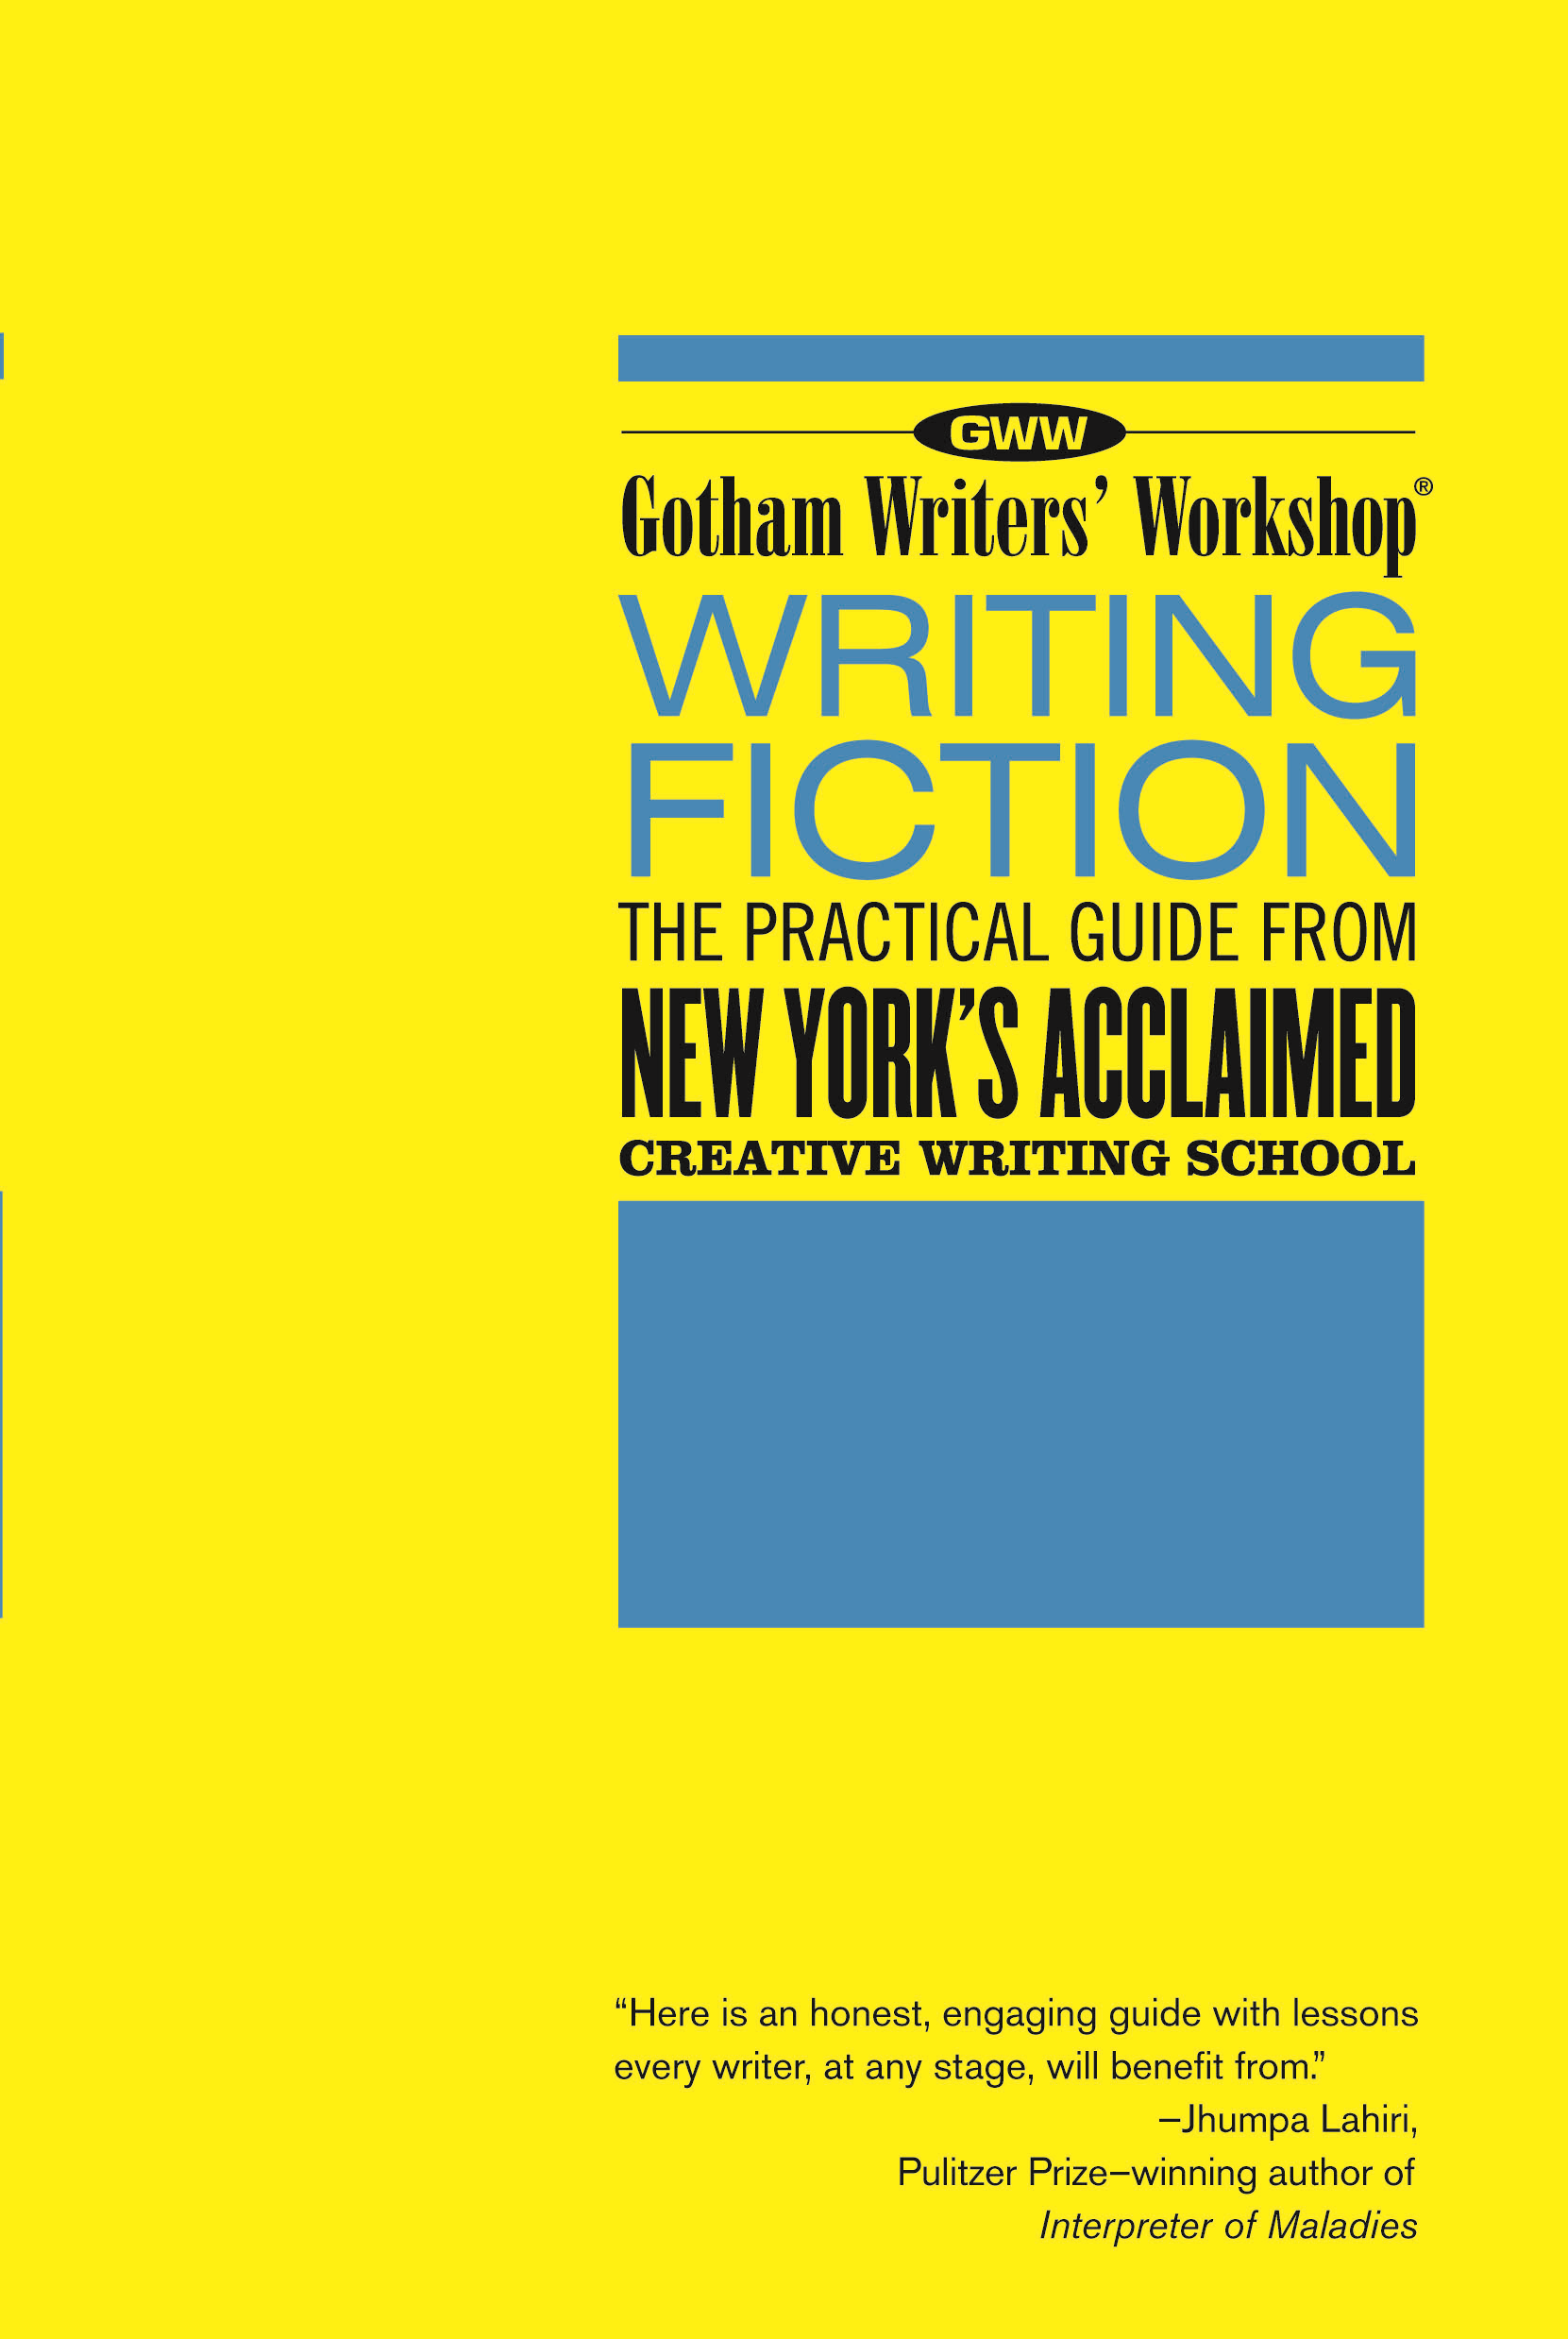 Gotham Writers Workshop: Writing Fiction The Practical Guide From New York's Acclaimed Writing School